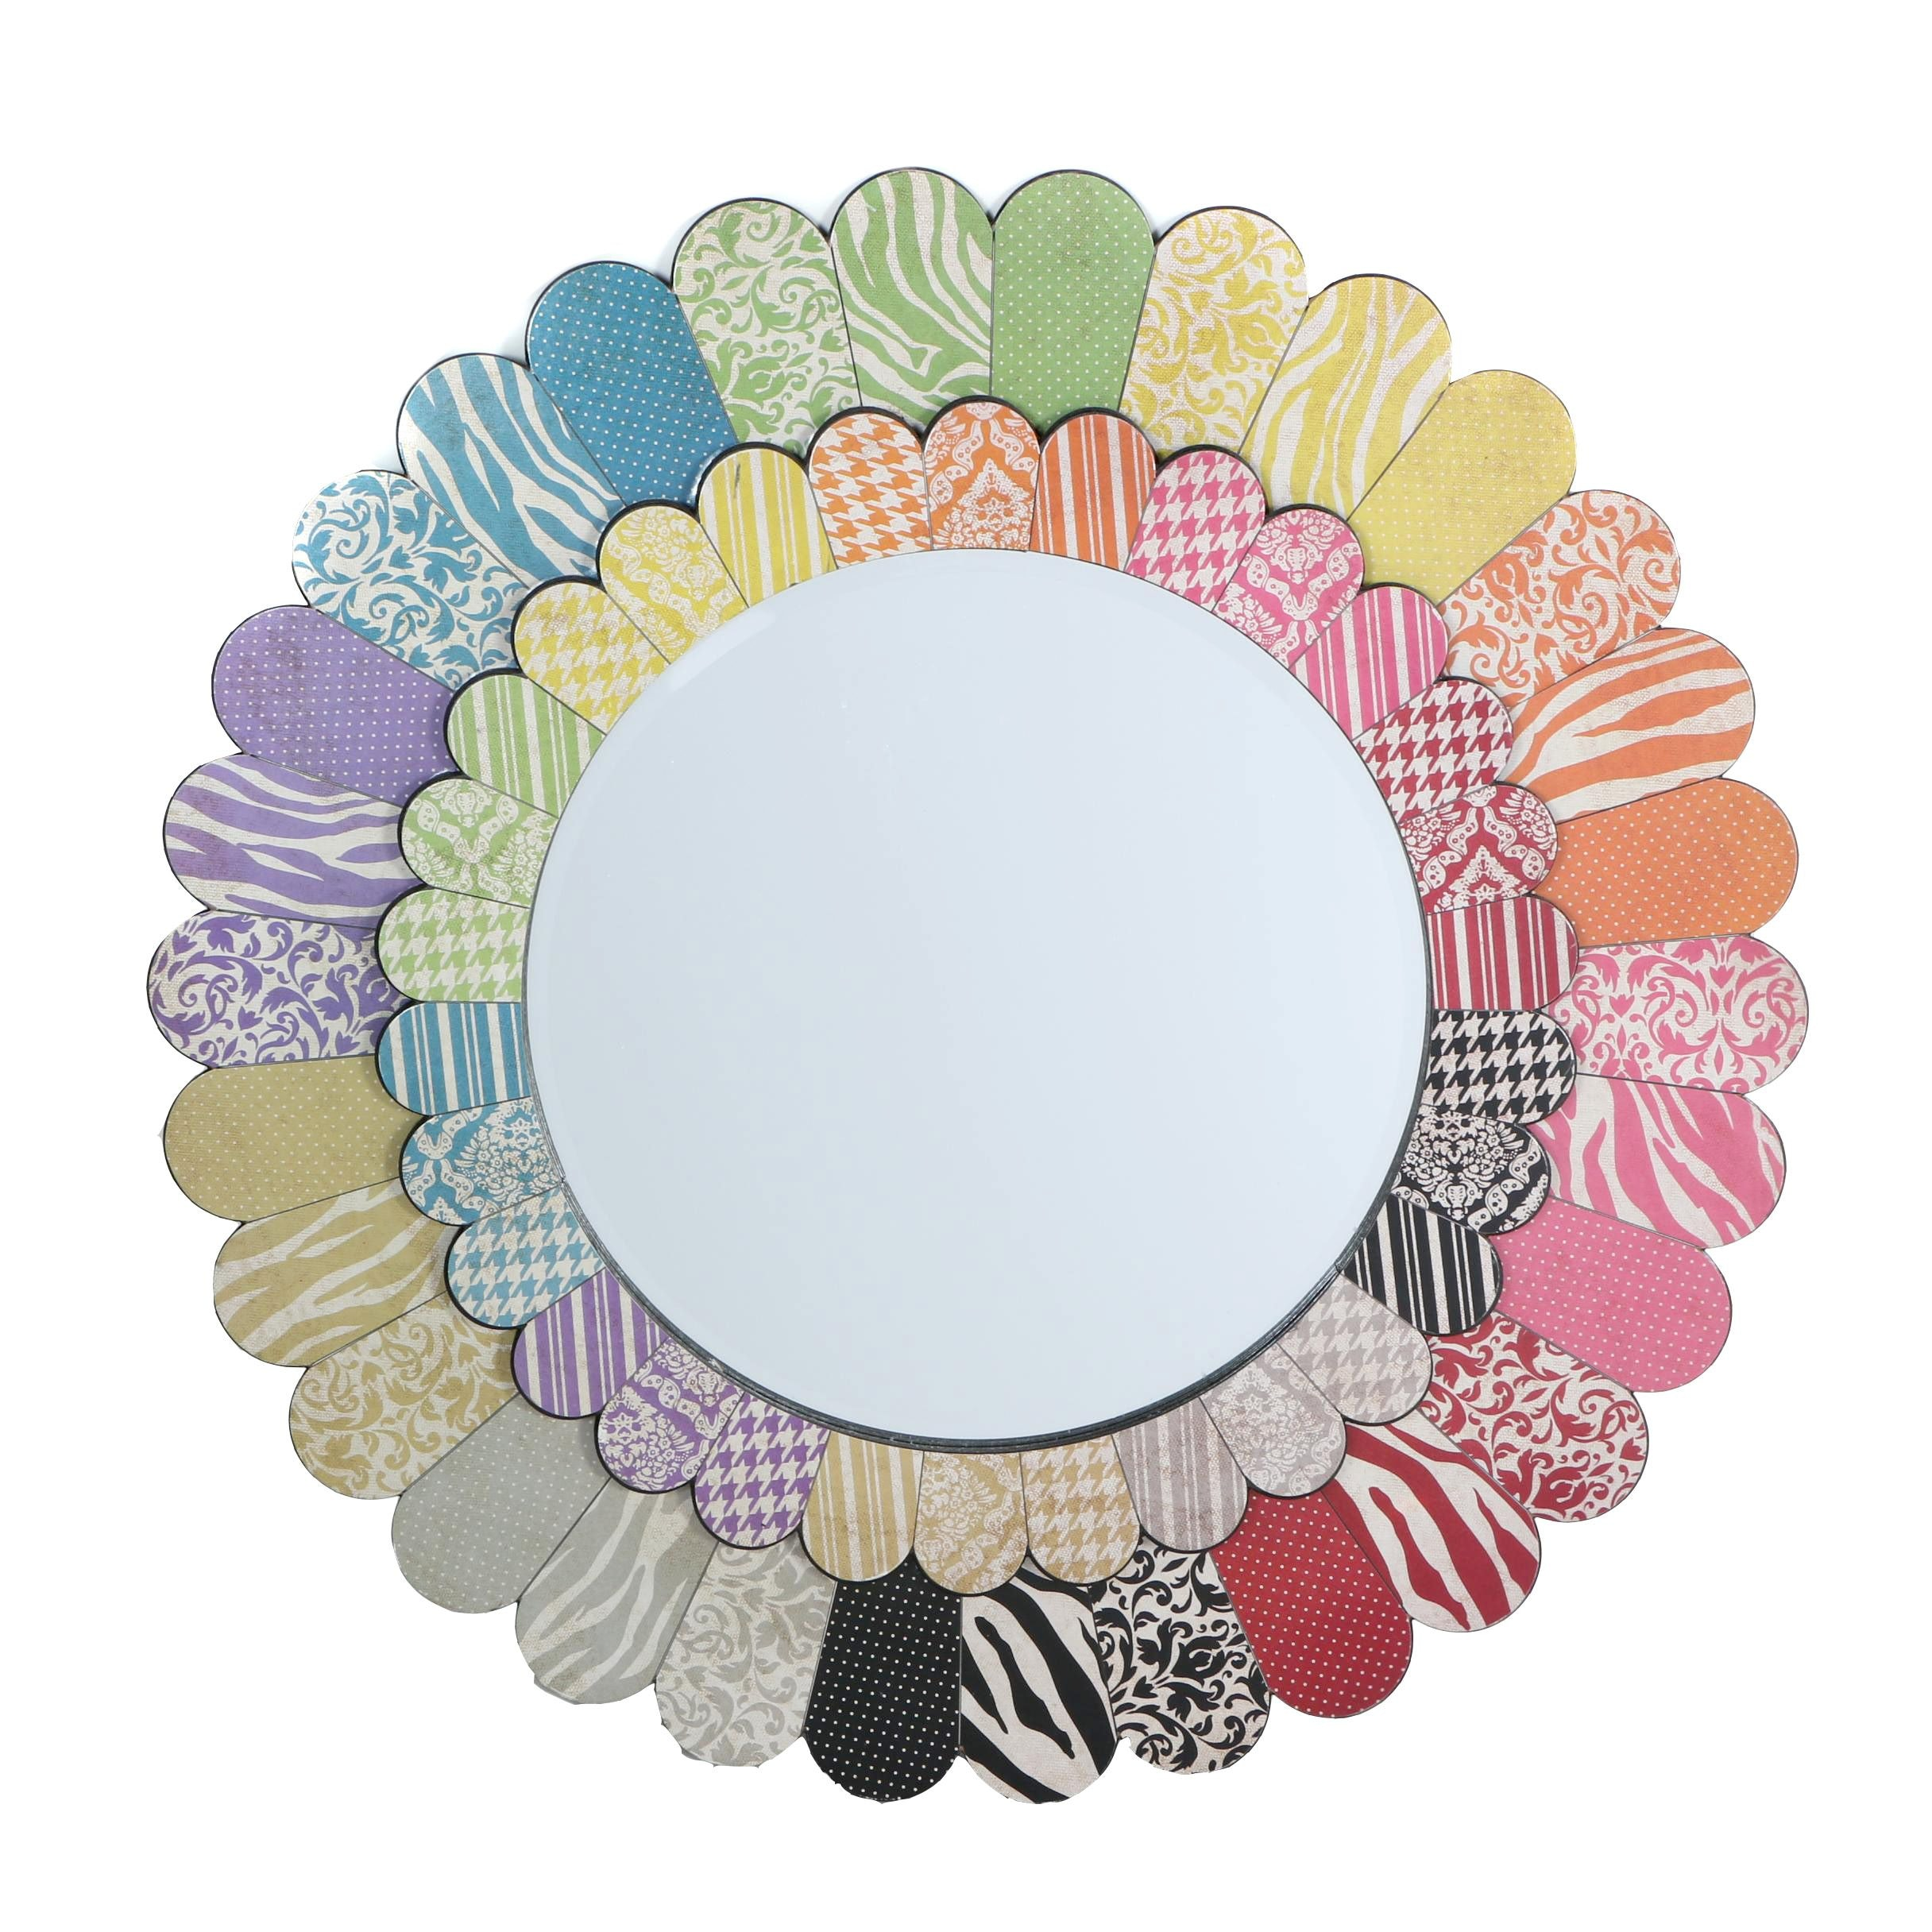 Decorative Wall Mirror with Patterned Frame